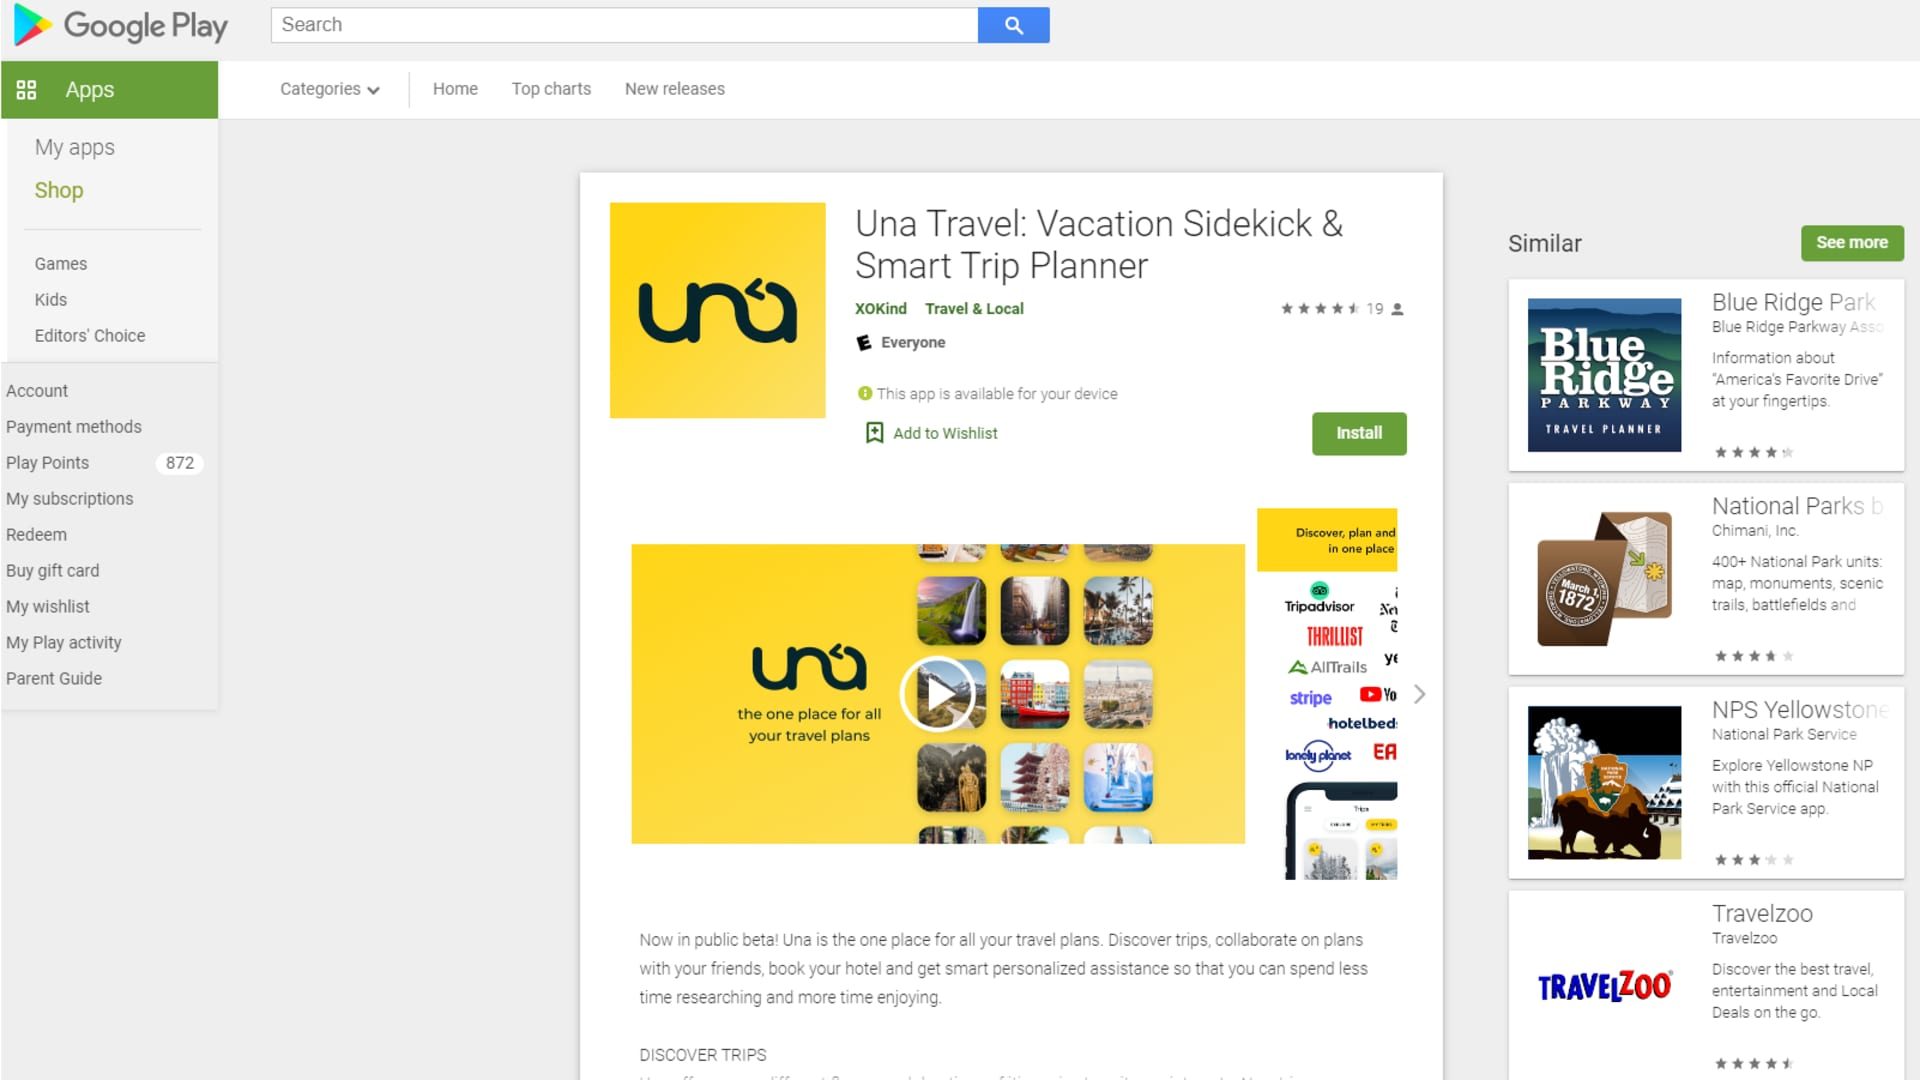 XOKind's Una Travel: Vacation Sidekick & Smart Trip Planner is now available in the Google Play and Apple app stores.